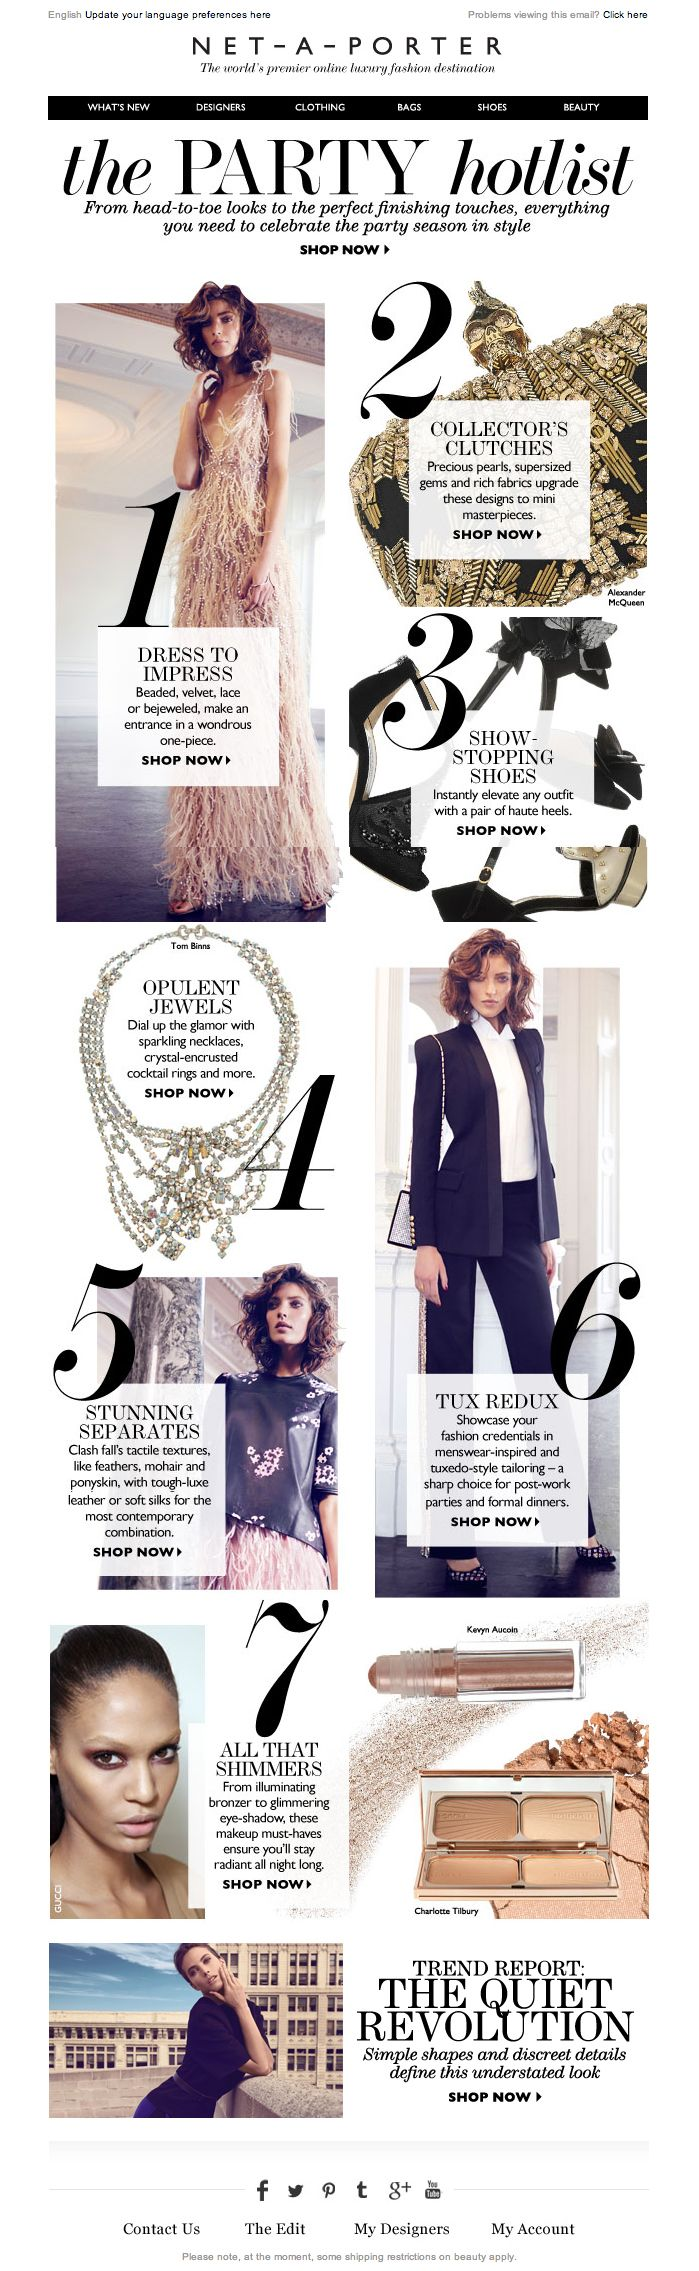 #newsletter Net-a-porter 11.2013  7 steps to perfecting your party look